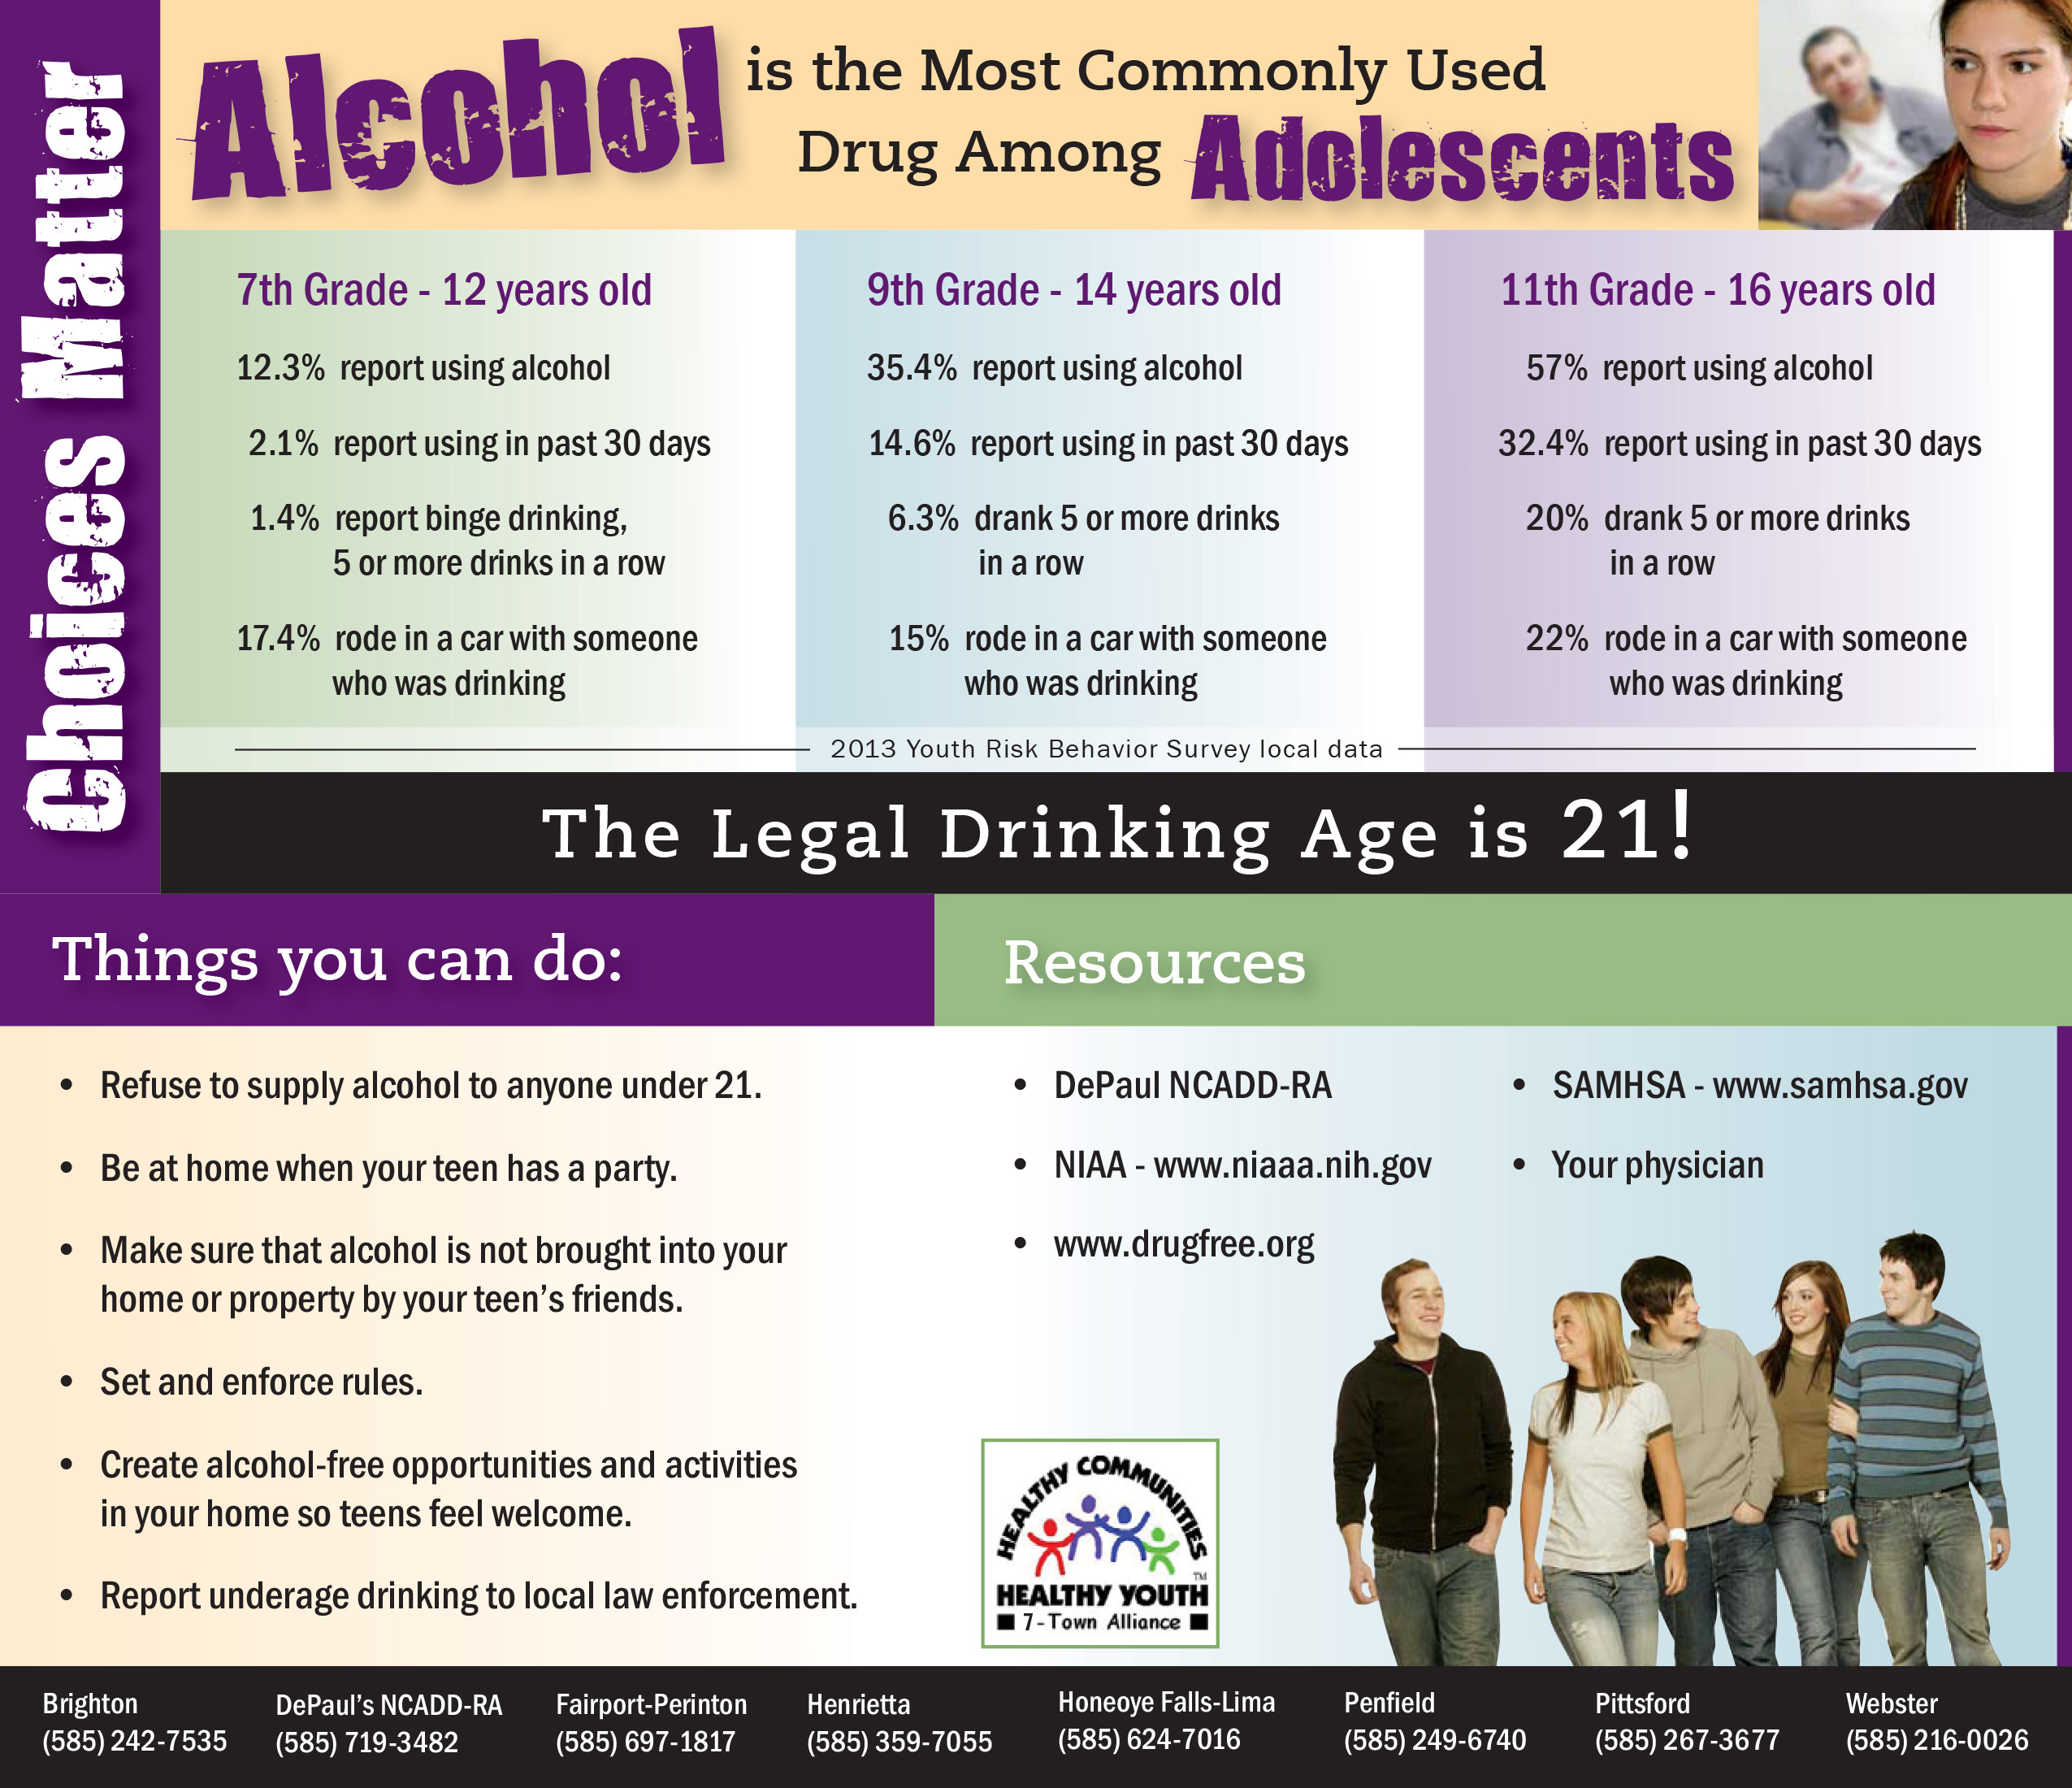 Alcohol Commonly Used Drug Adolescents